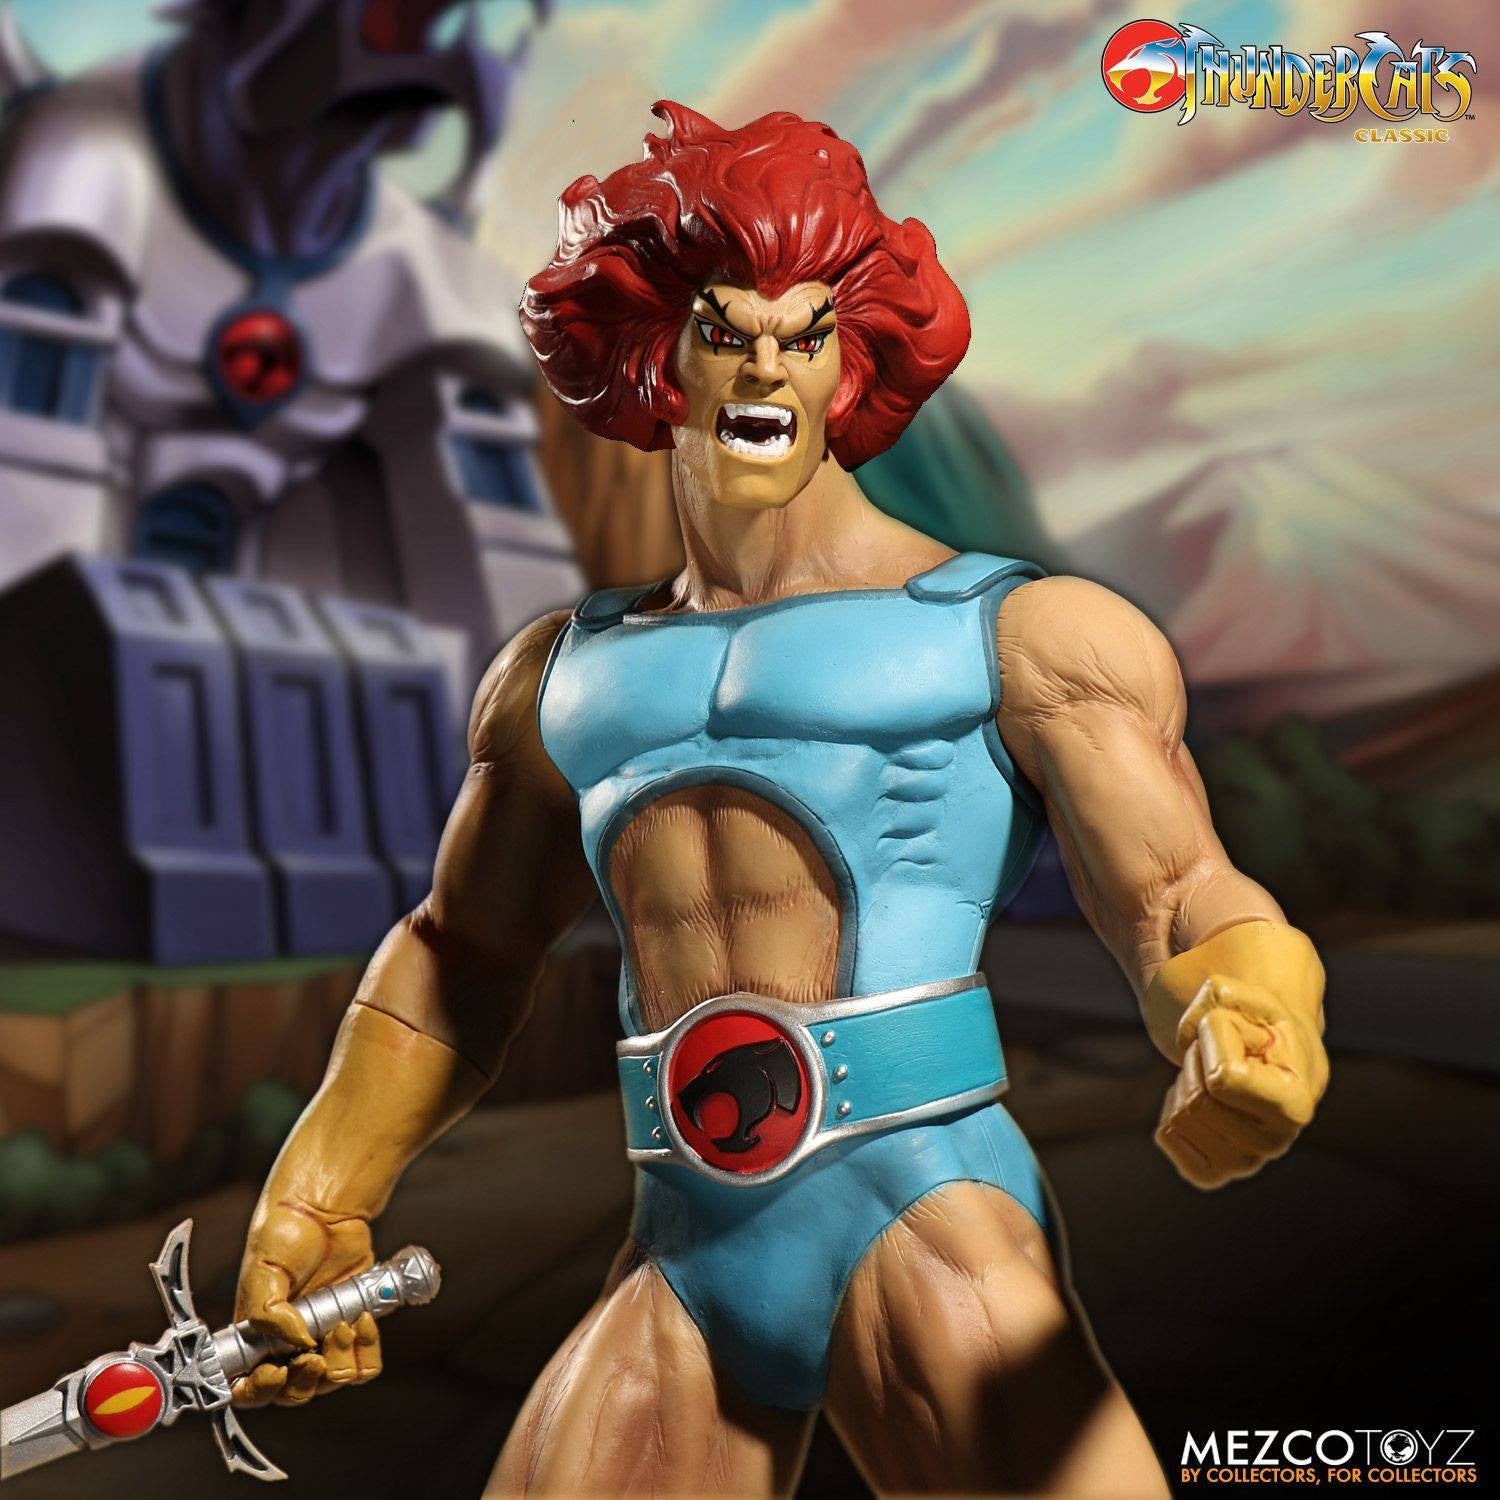 Mezco - Mega Scale - Thundercats - Lion-O Deluxe Edition - Marvelous Toys - 3